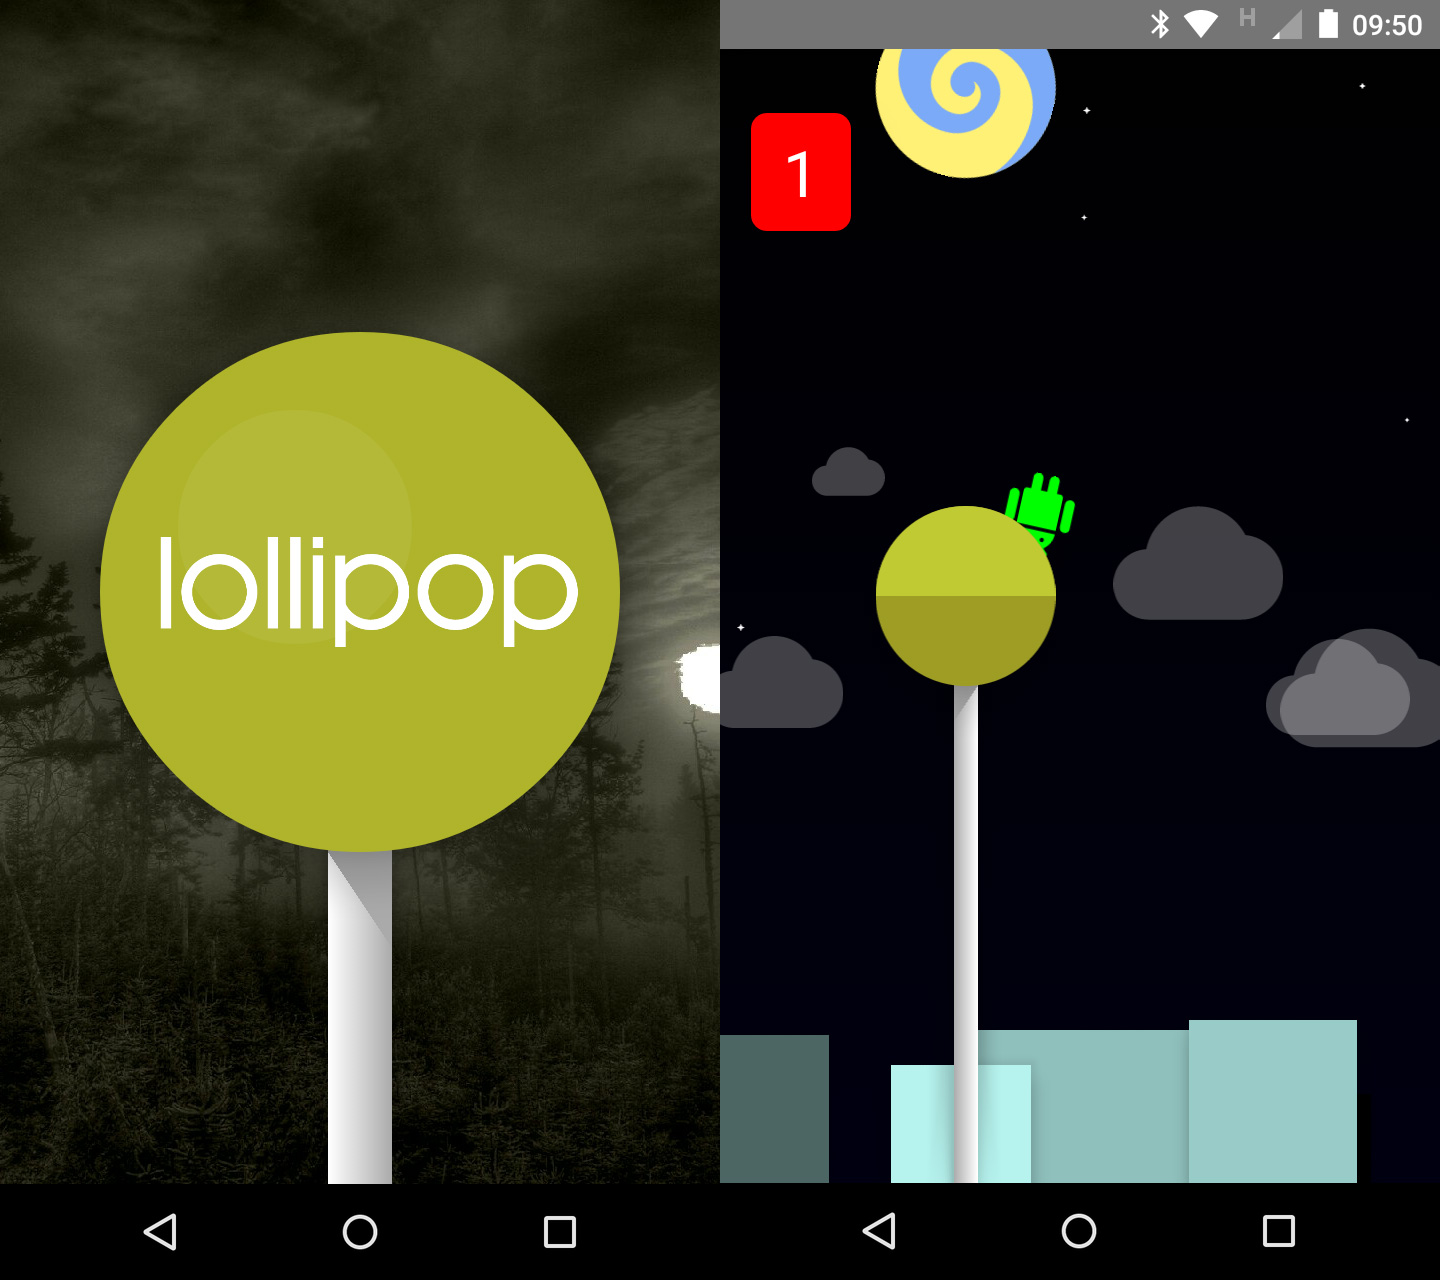 motorola_moto-g_android-502_easter-egg_flappy-bird